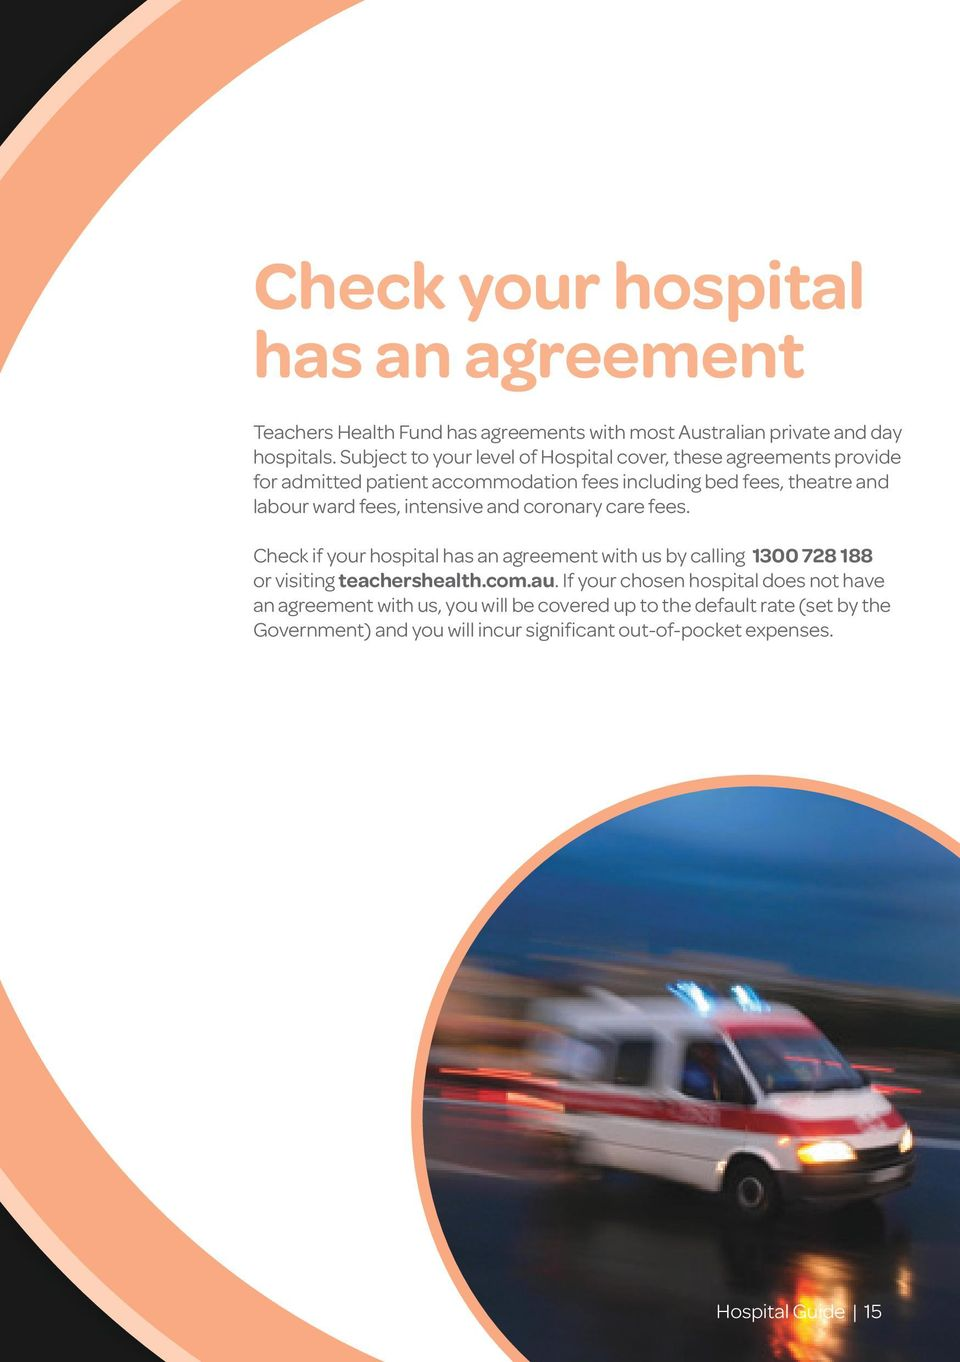 fees, intensive and coronary care fees. Check if your hospital has an agreement with us by calling 1300 728 188 or visiting teachershealth.com.au.